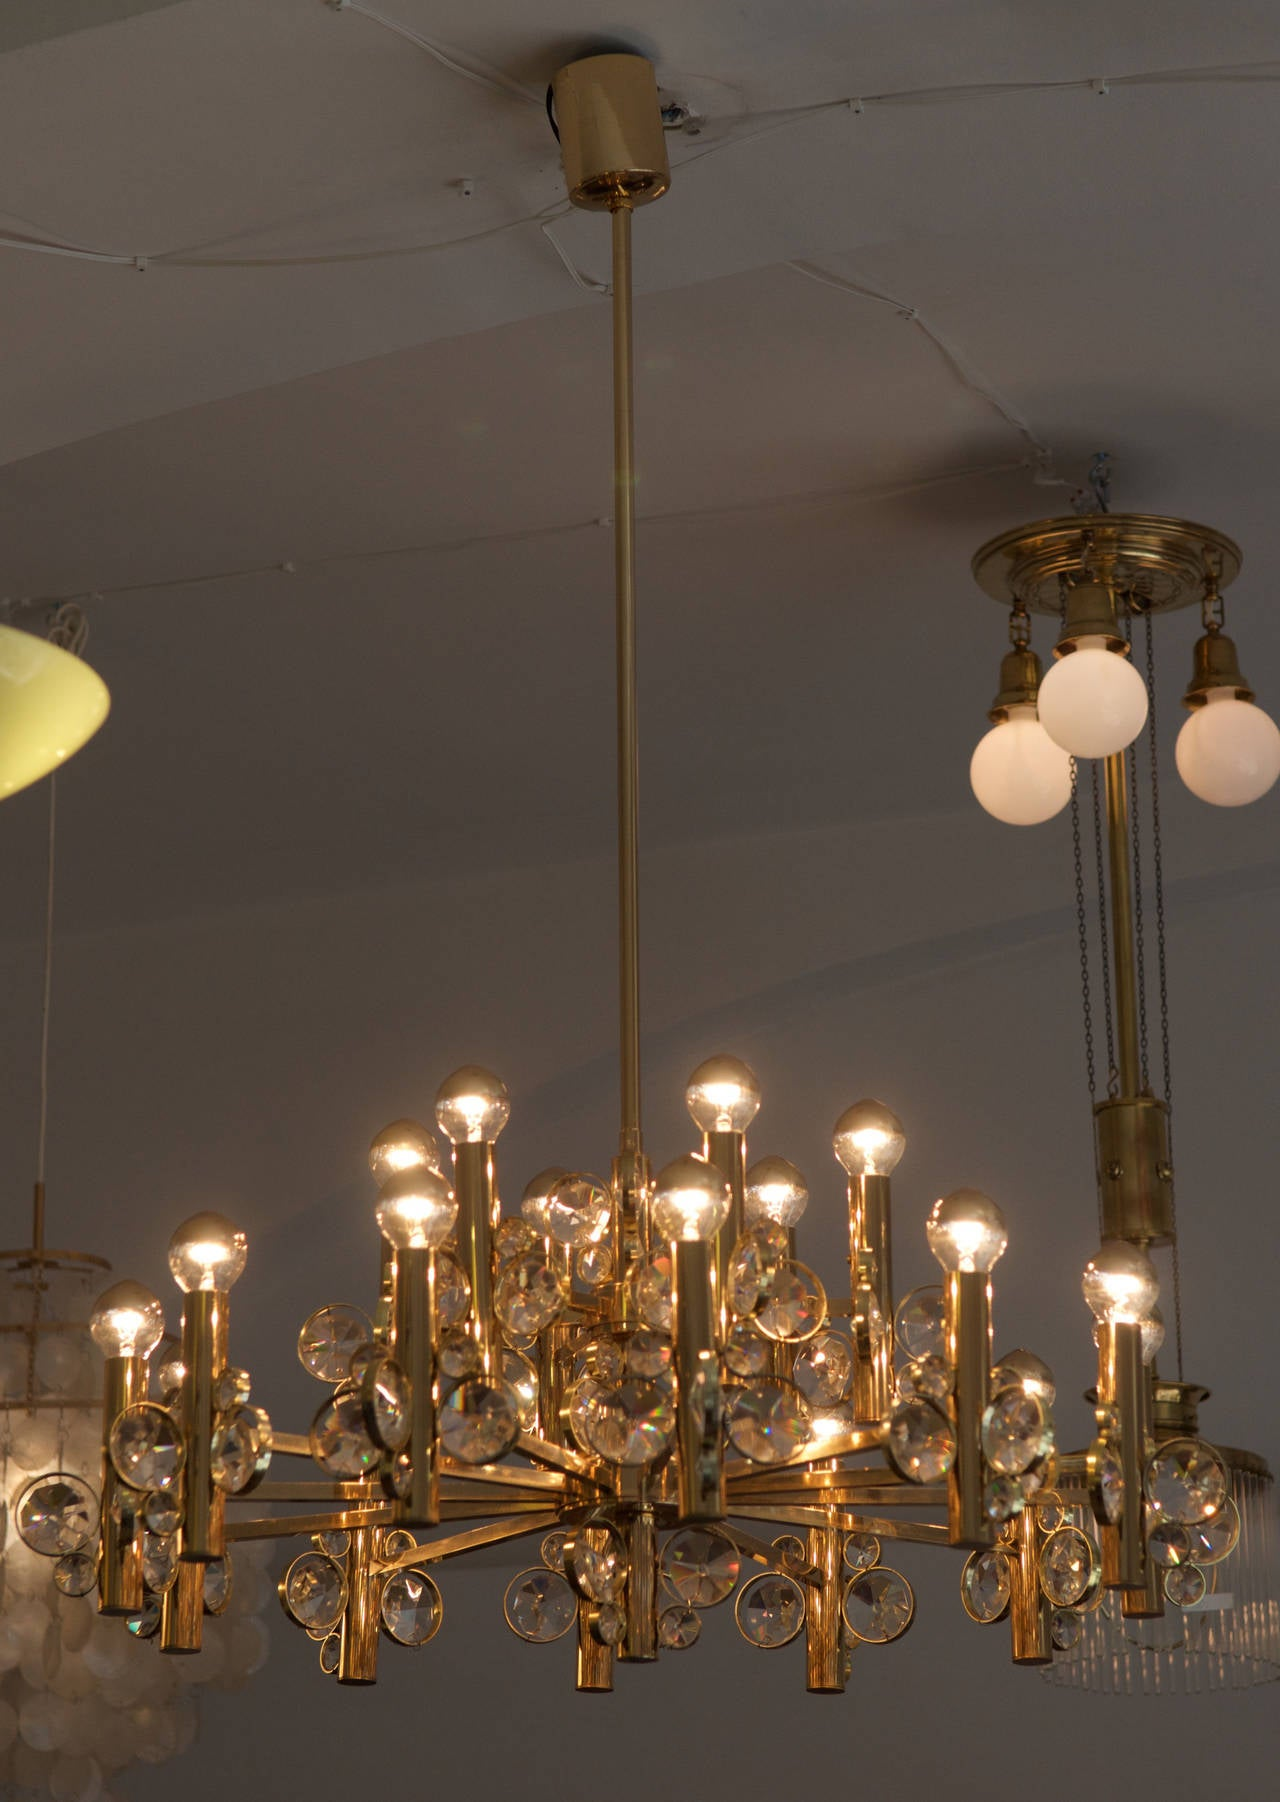 Large Impressive Cut Crystal Chandelier Attributed to Gaetano Sciolari For Sale 2